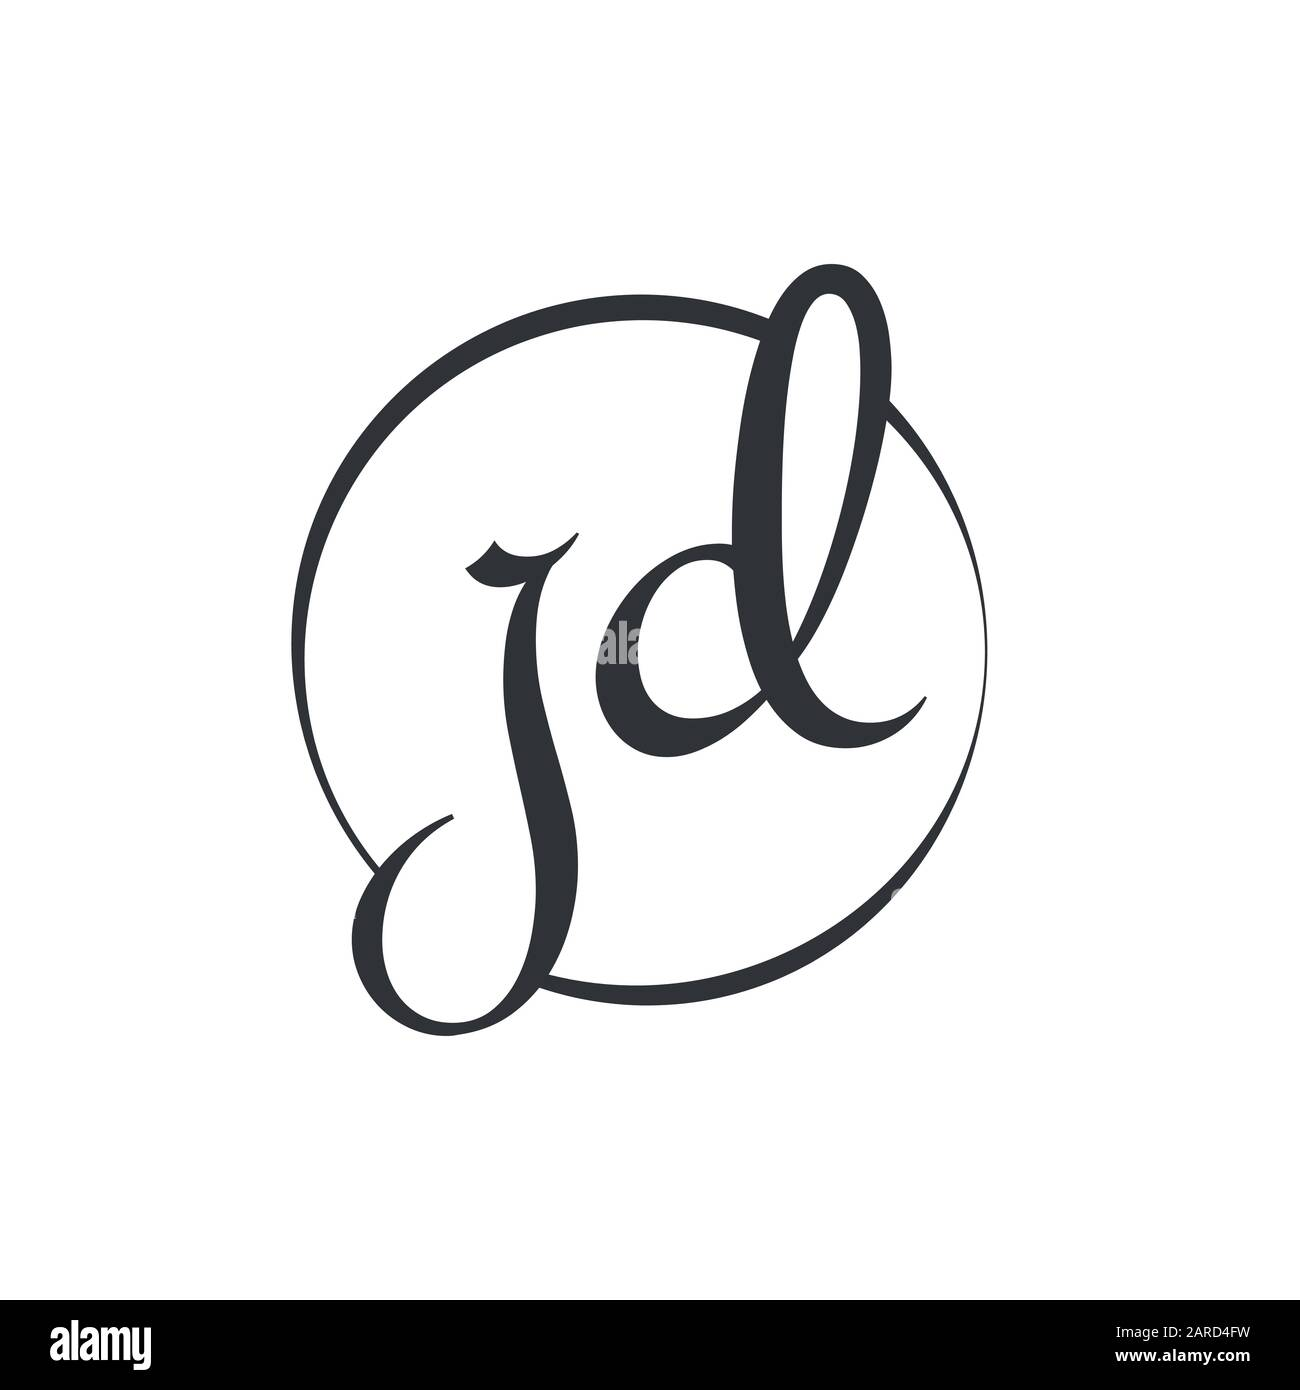 letter jd logo design vector template initial linked letter design jd vector illustration stock vector image art alamy https www alamy com letter jd logo design vector template initial linked letter design jd vector illustration image341423037 html